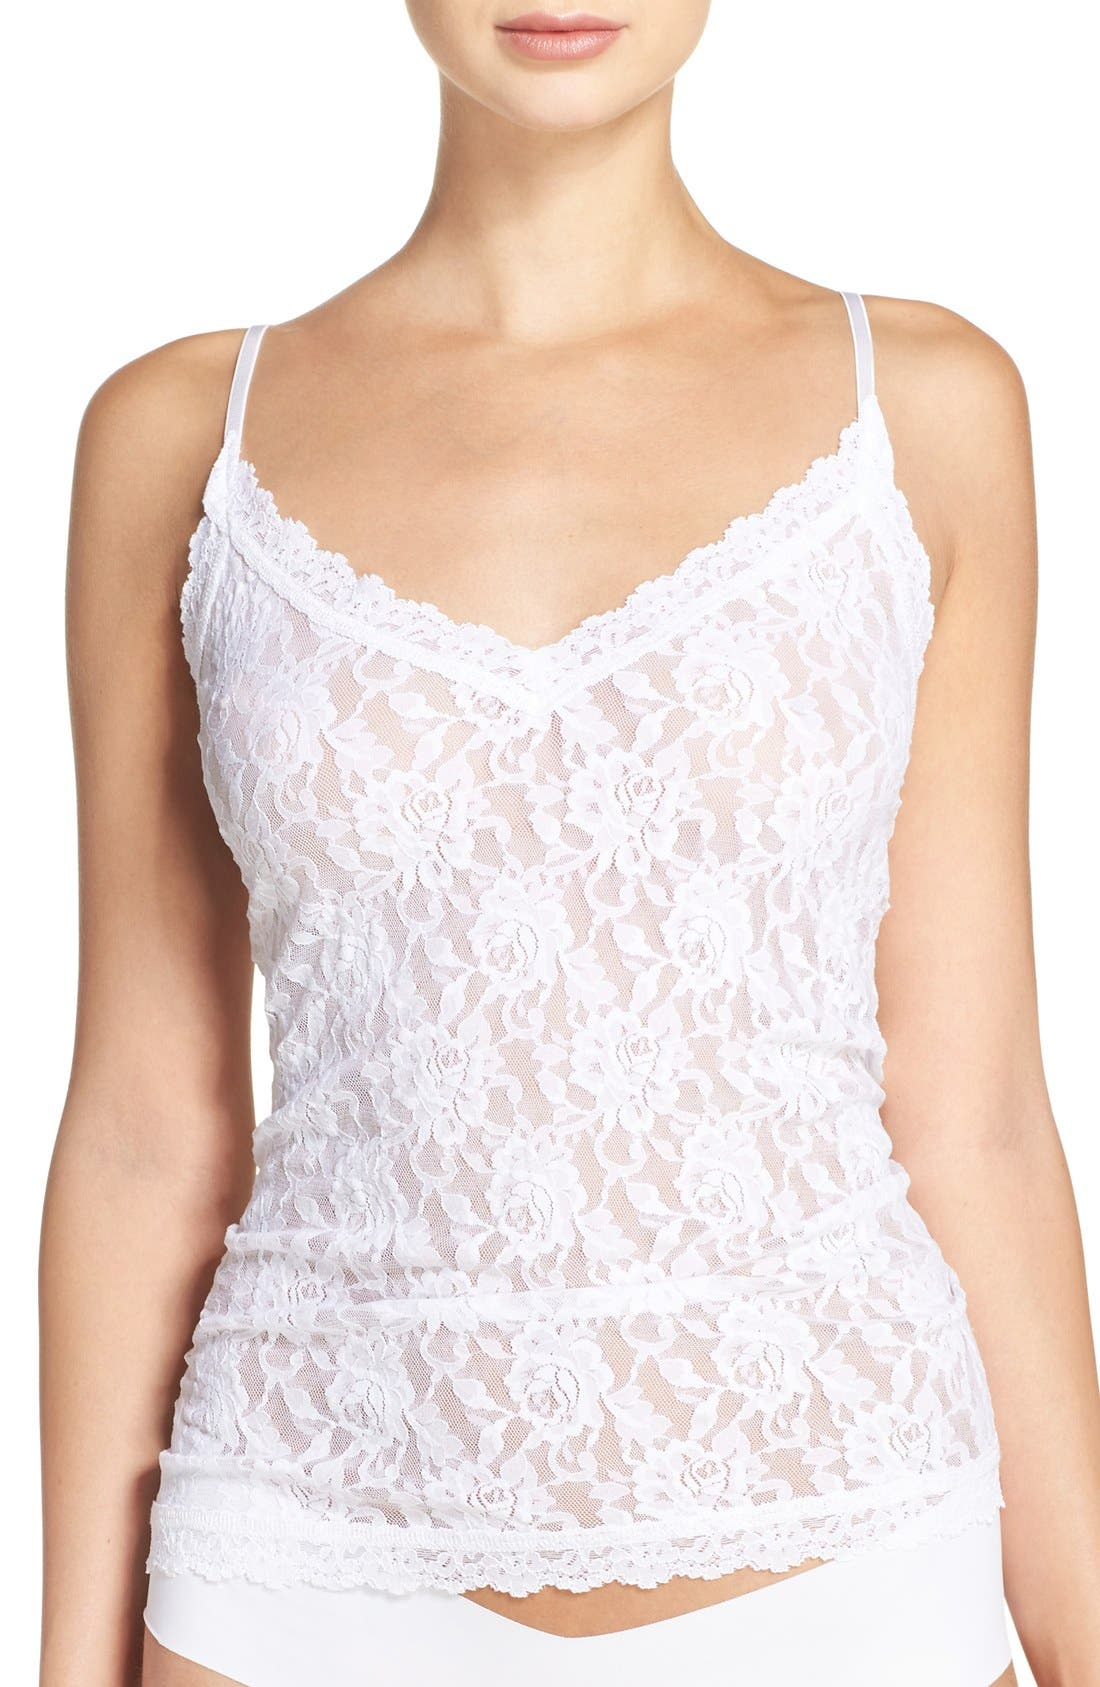 Hanky Panky Lace Camisole, White